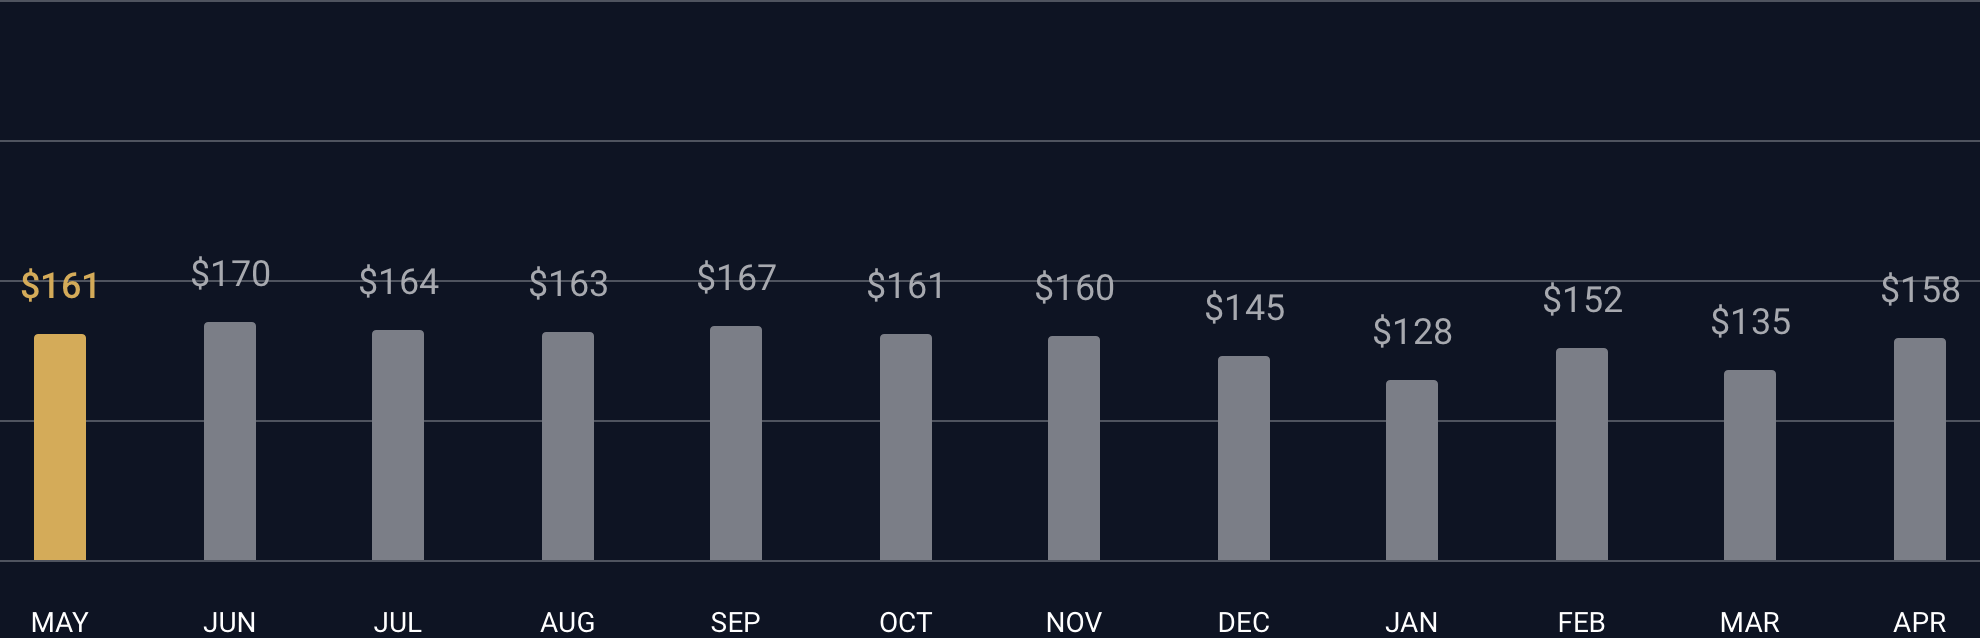 Average Prices For Short Term Rentals In New York City